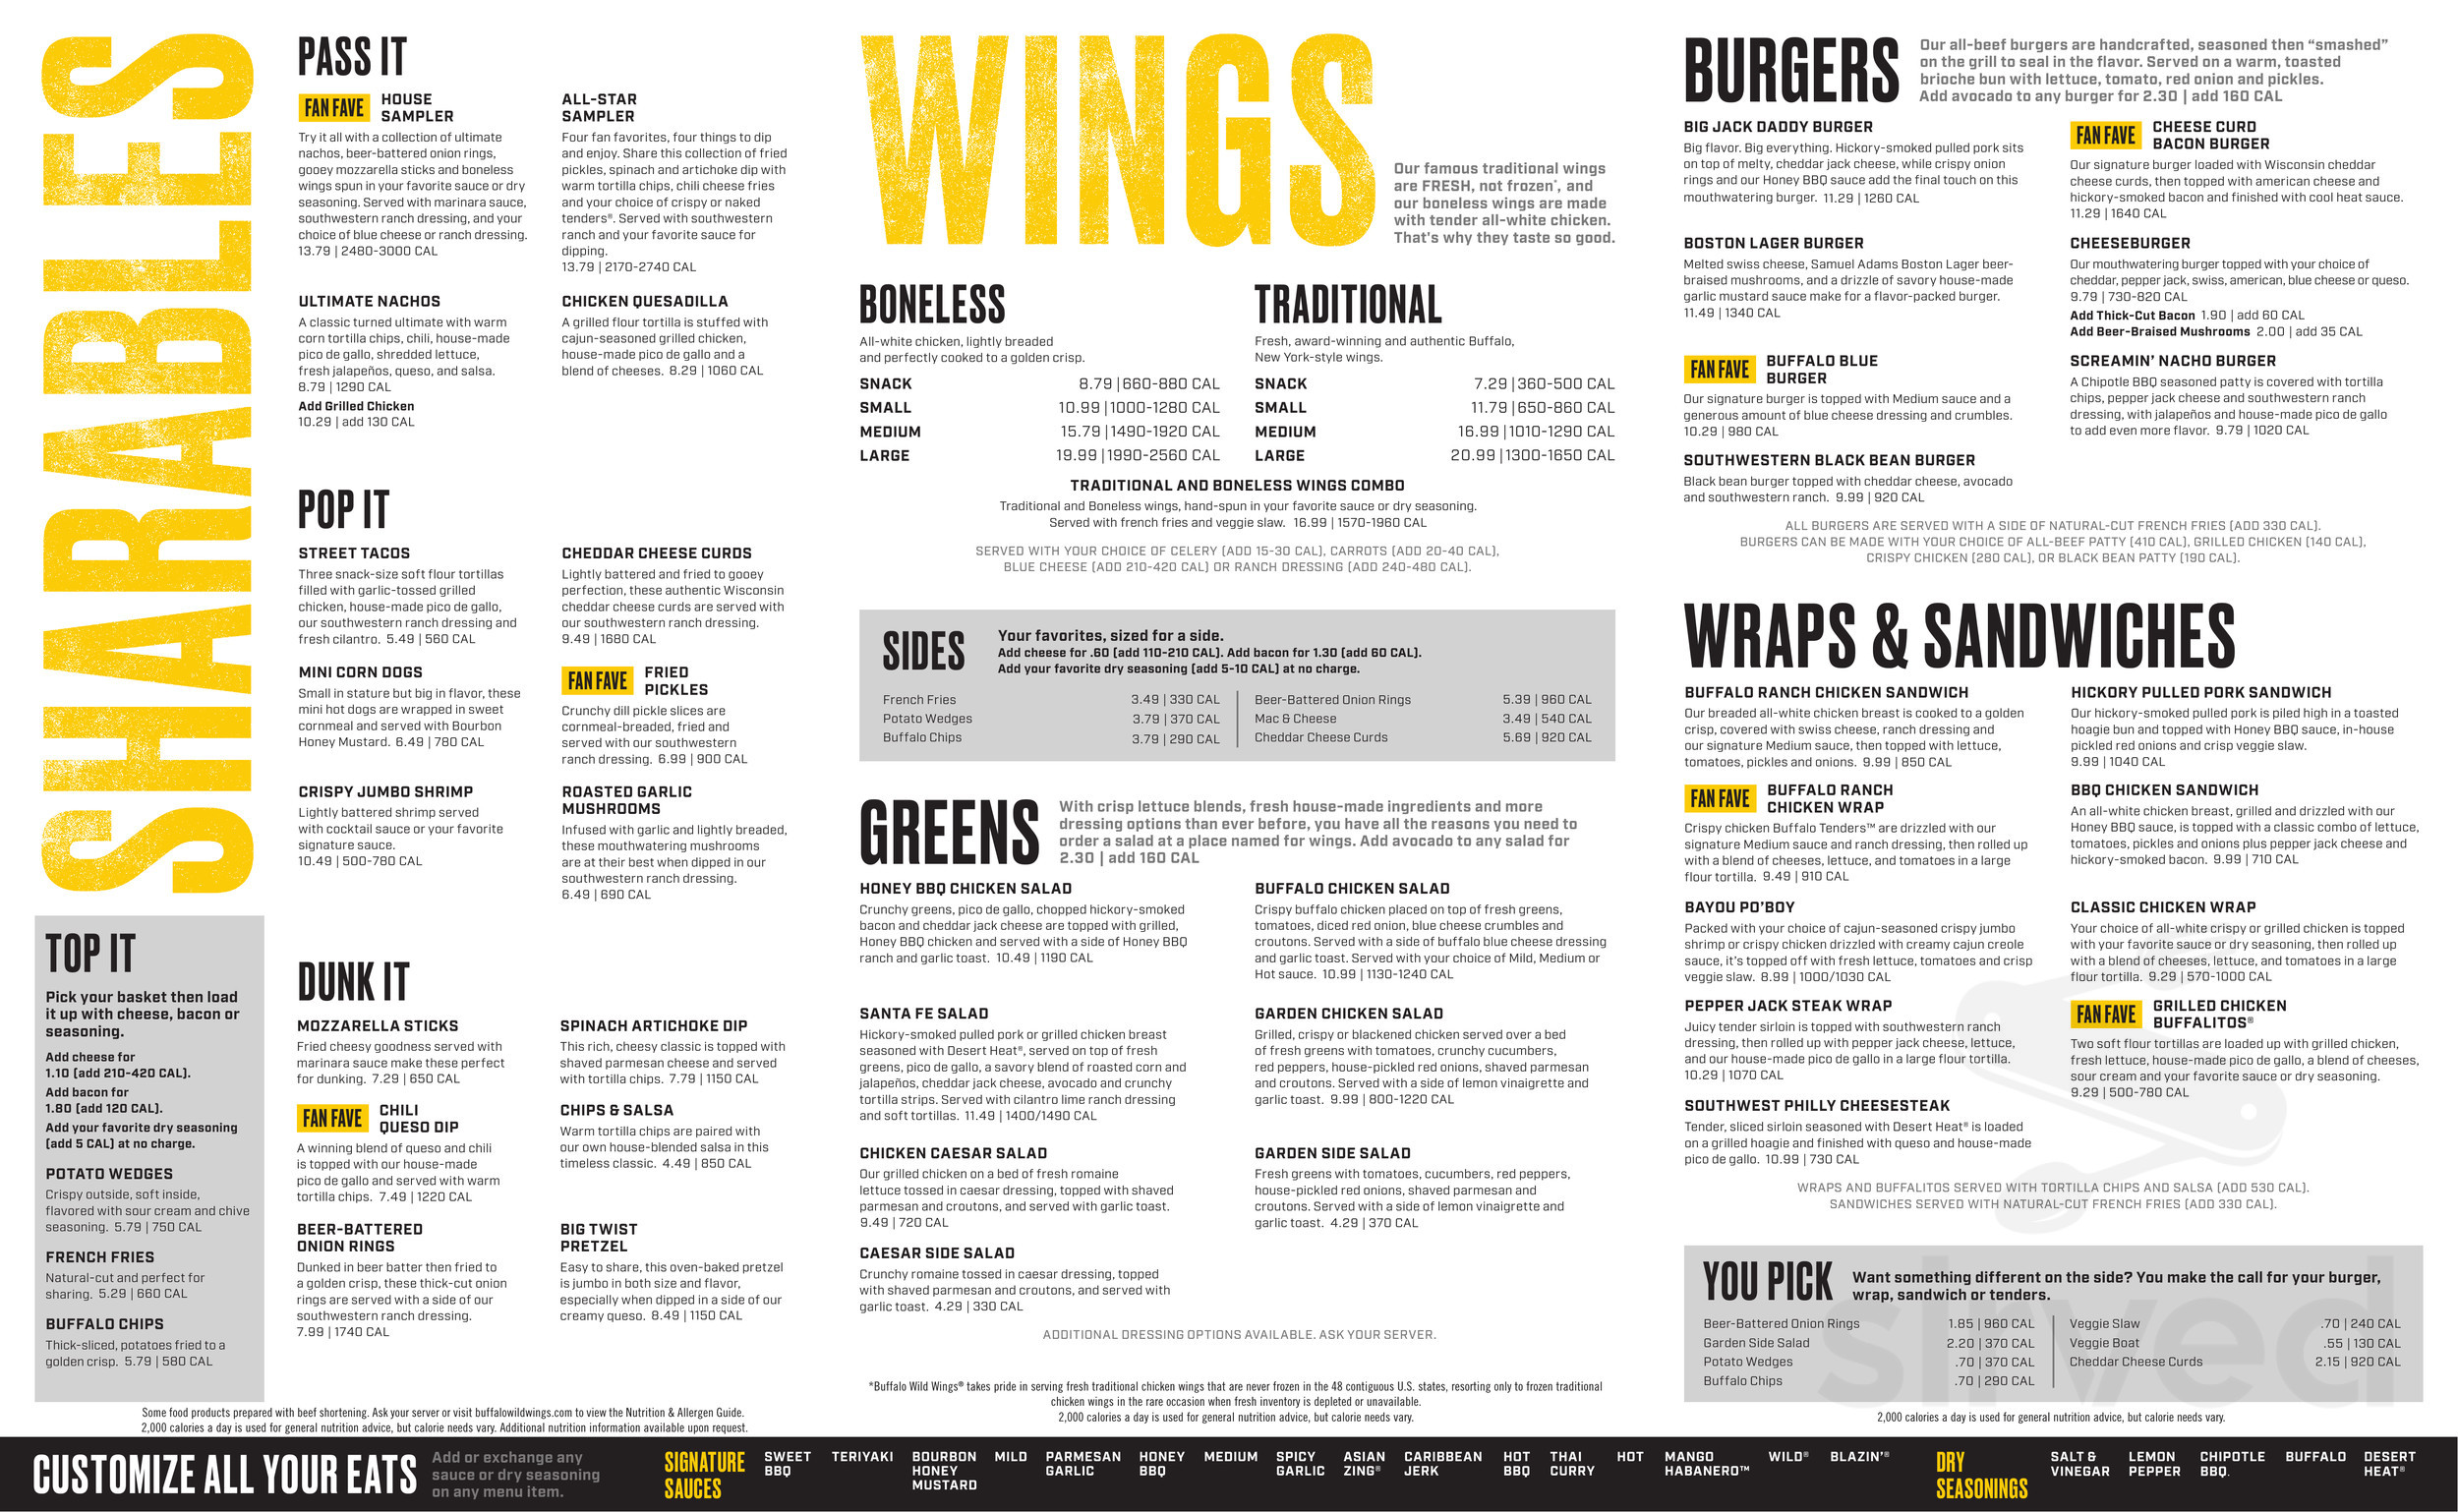 Menu for Buffalo Wild Wings in Rancho Cucamonga, California